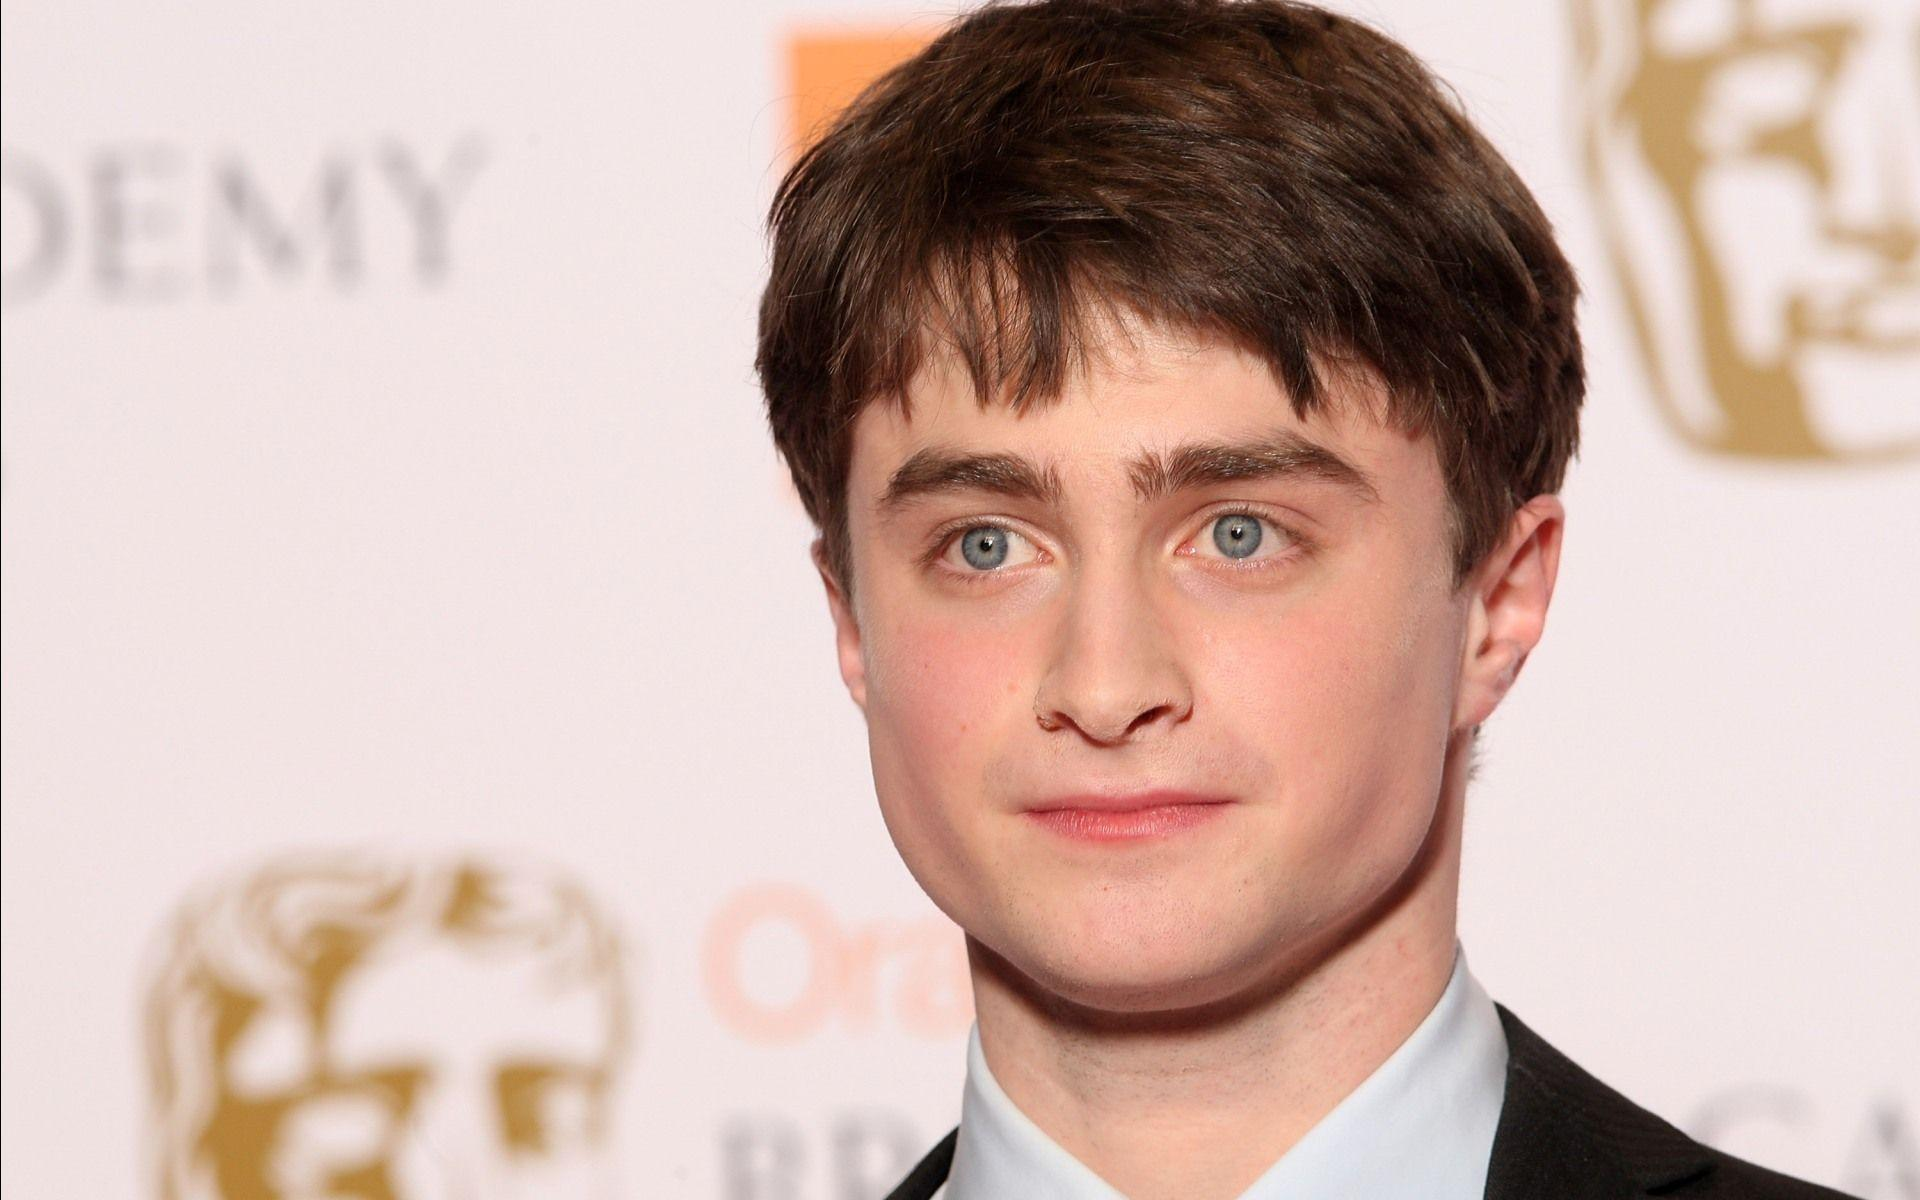 radcliffe hd wallpapers num2 - photo #12